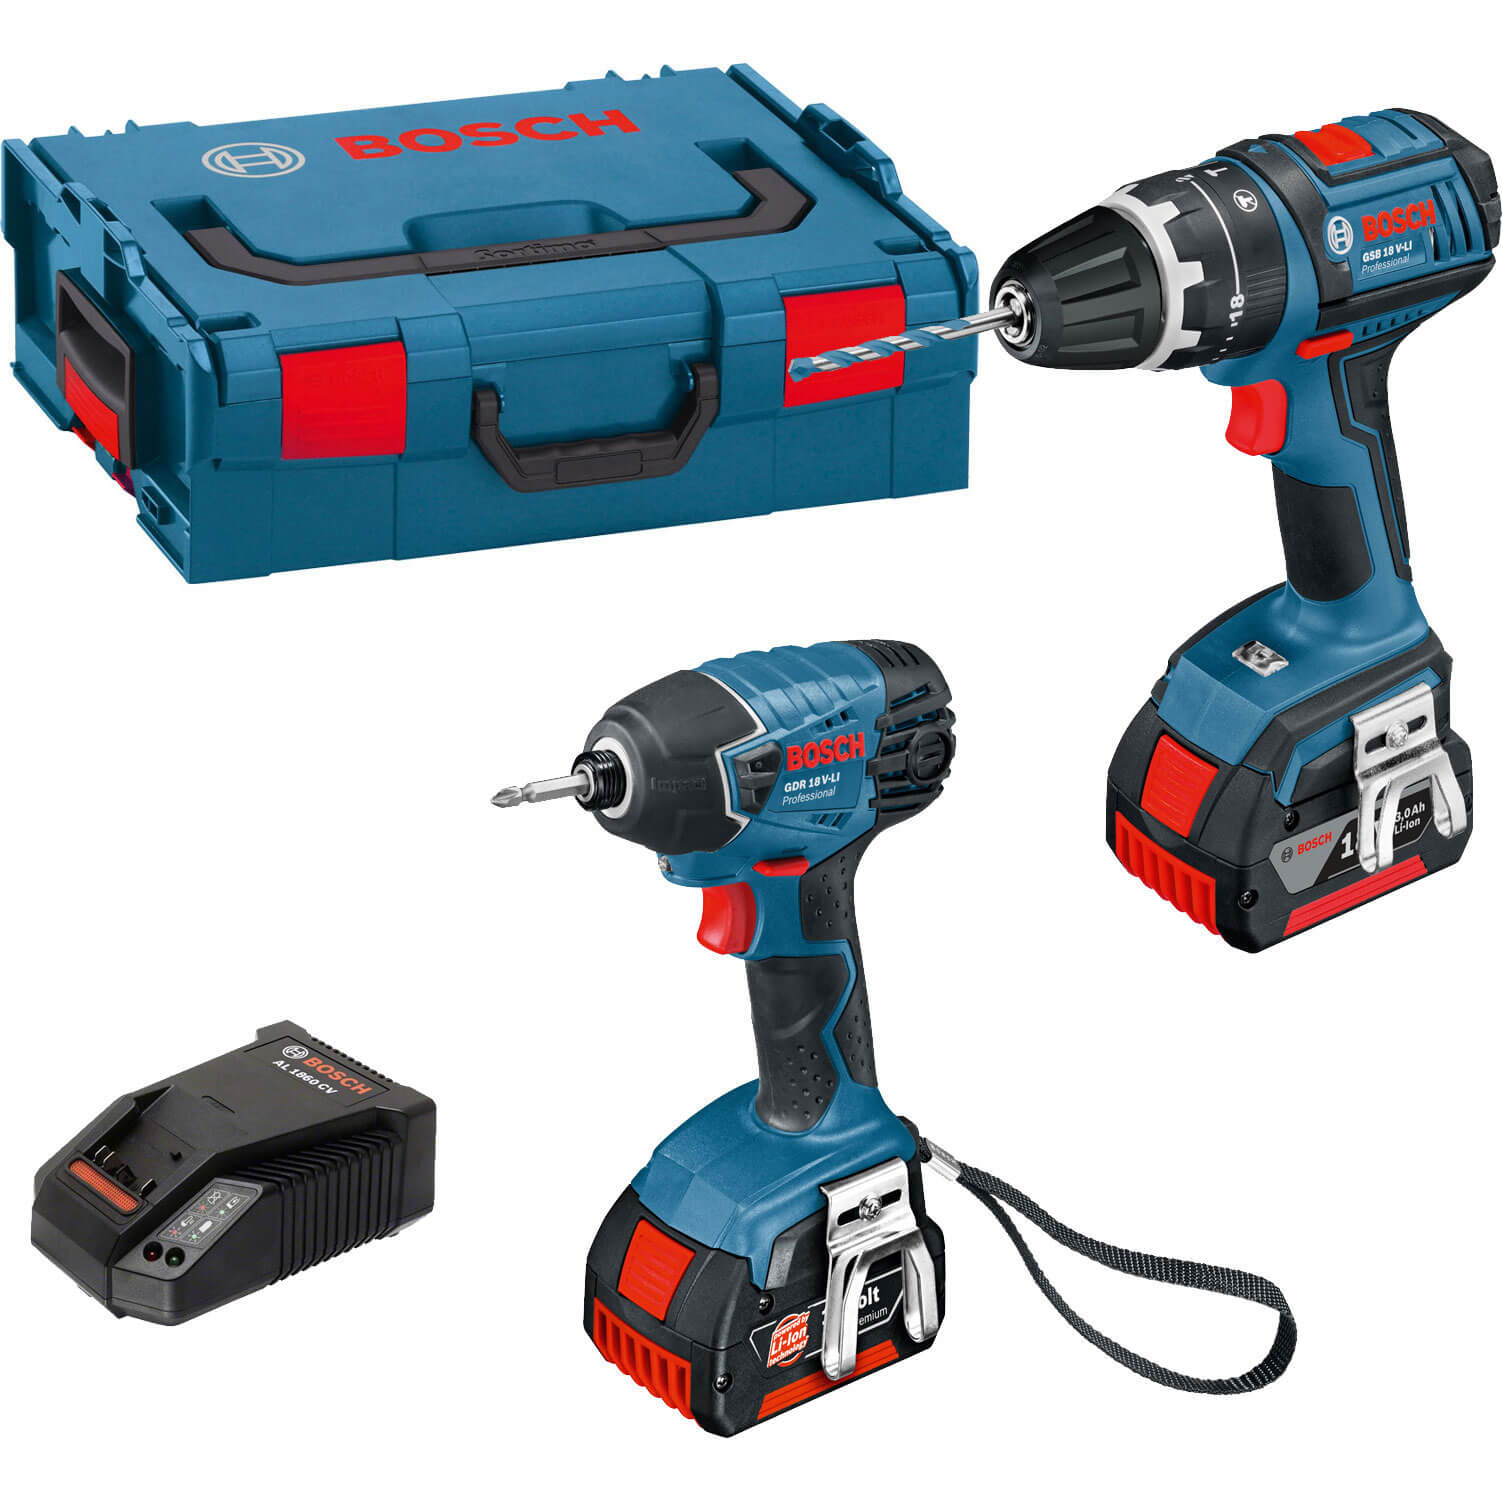 Bosch 18V Cordless Dynamicseries Combi Drill & Impact Driver 2 x 4ah Liion Charger Case